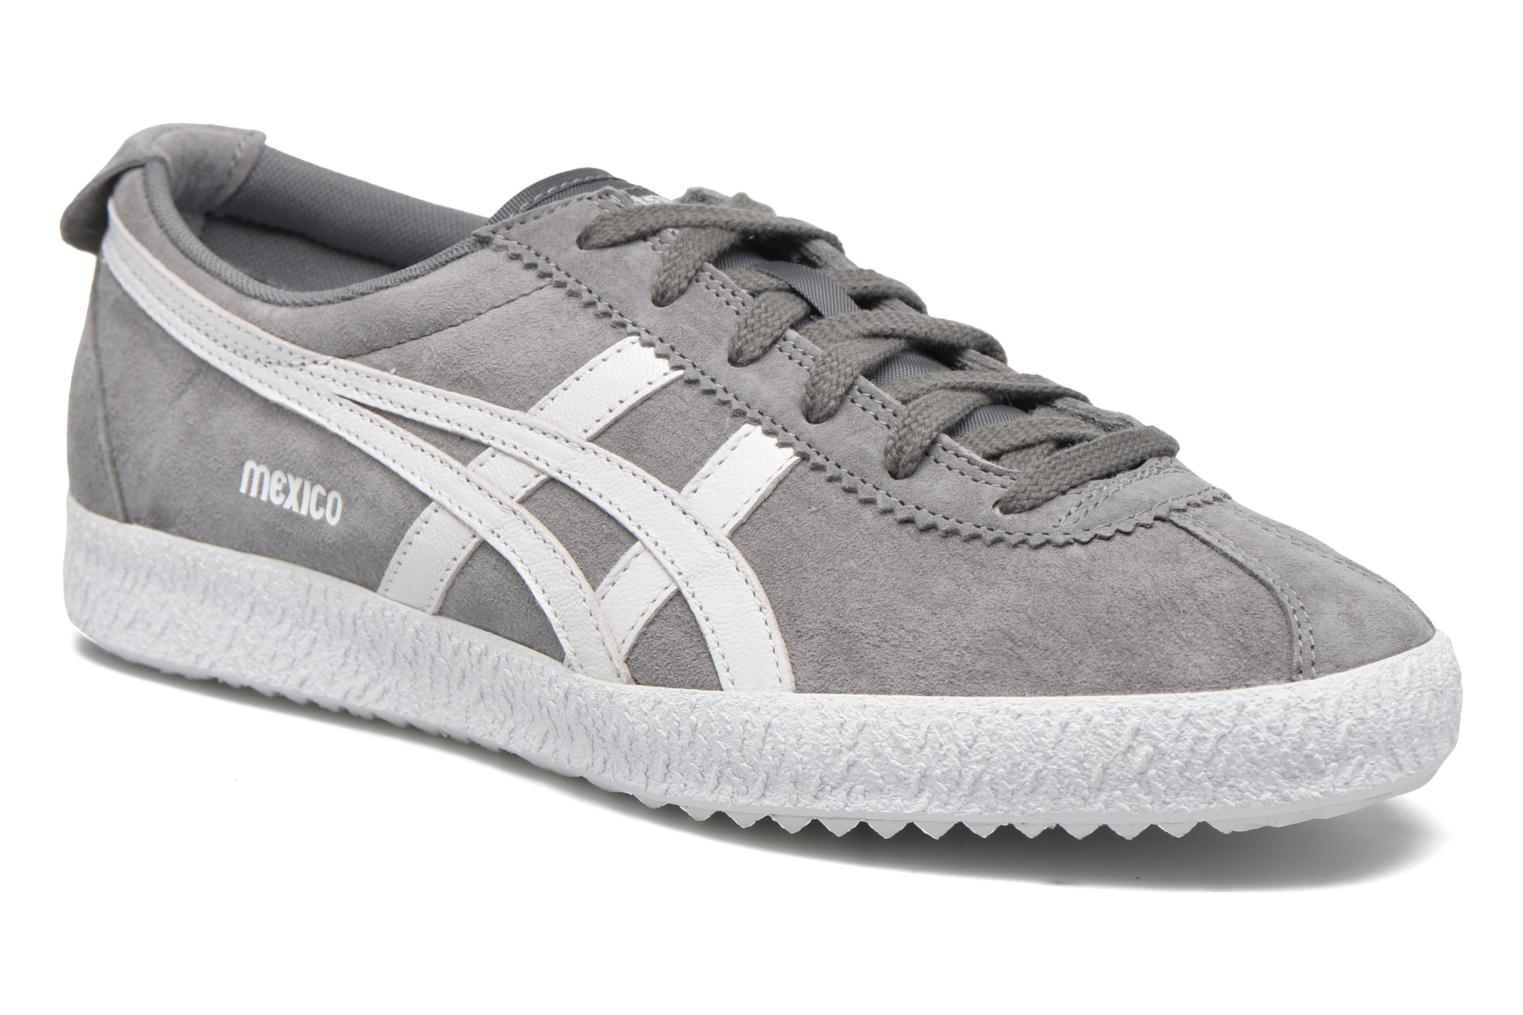 Sneakers Mexico Delegation by Onitsuka Tiger